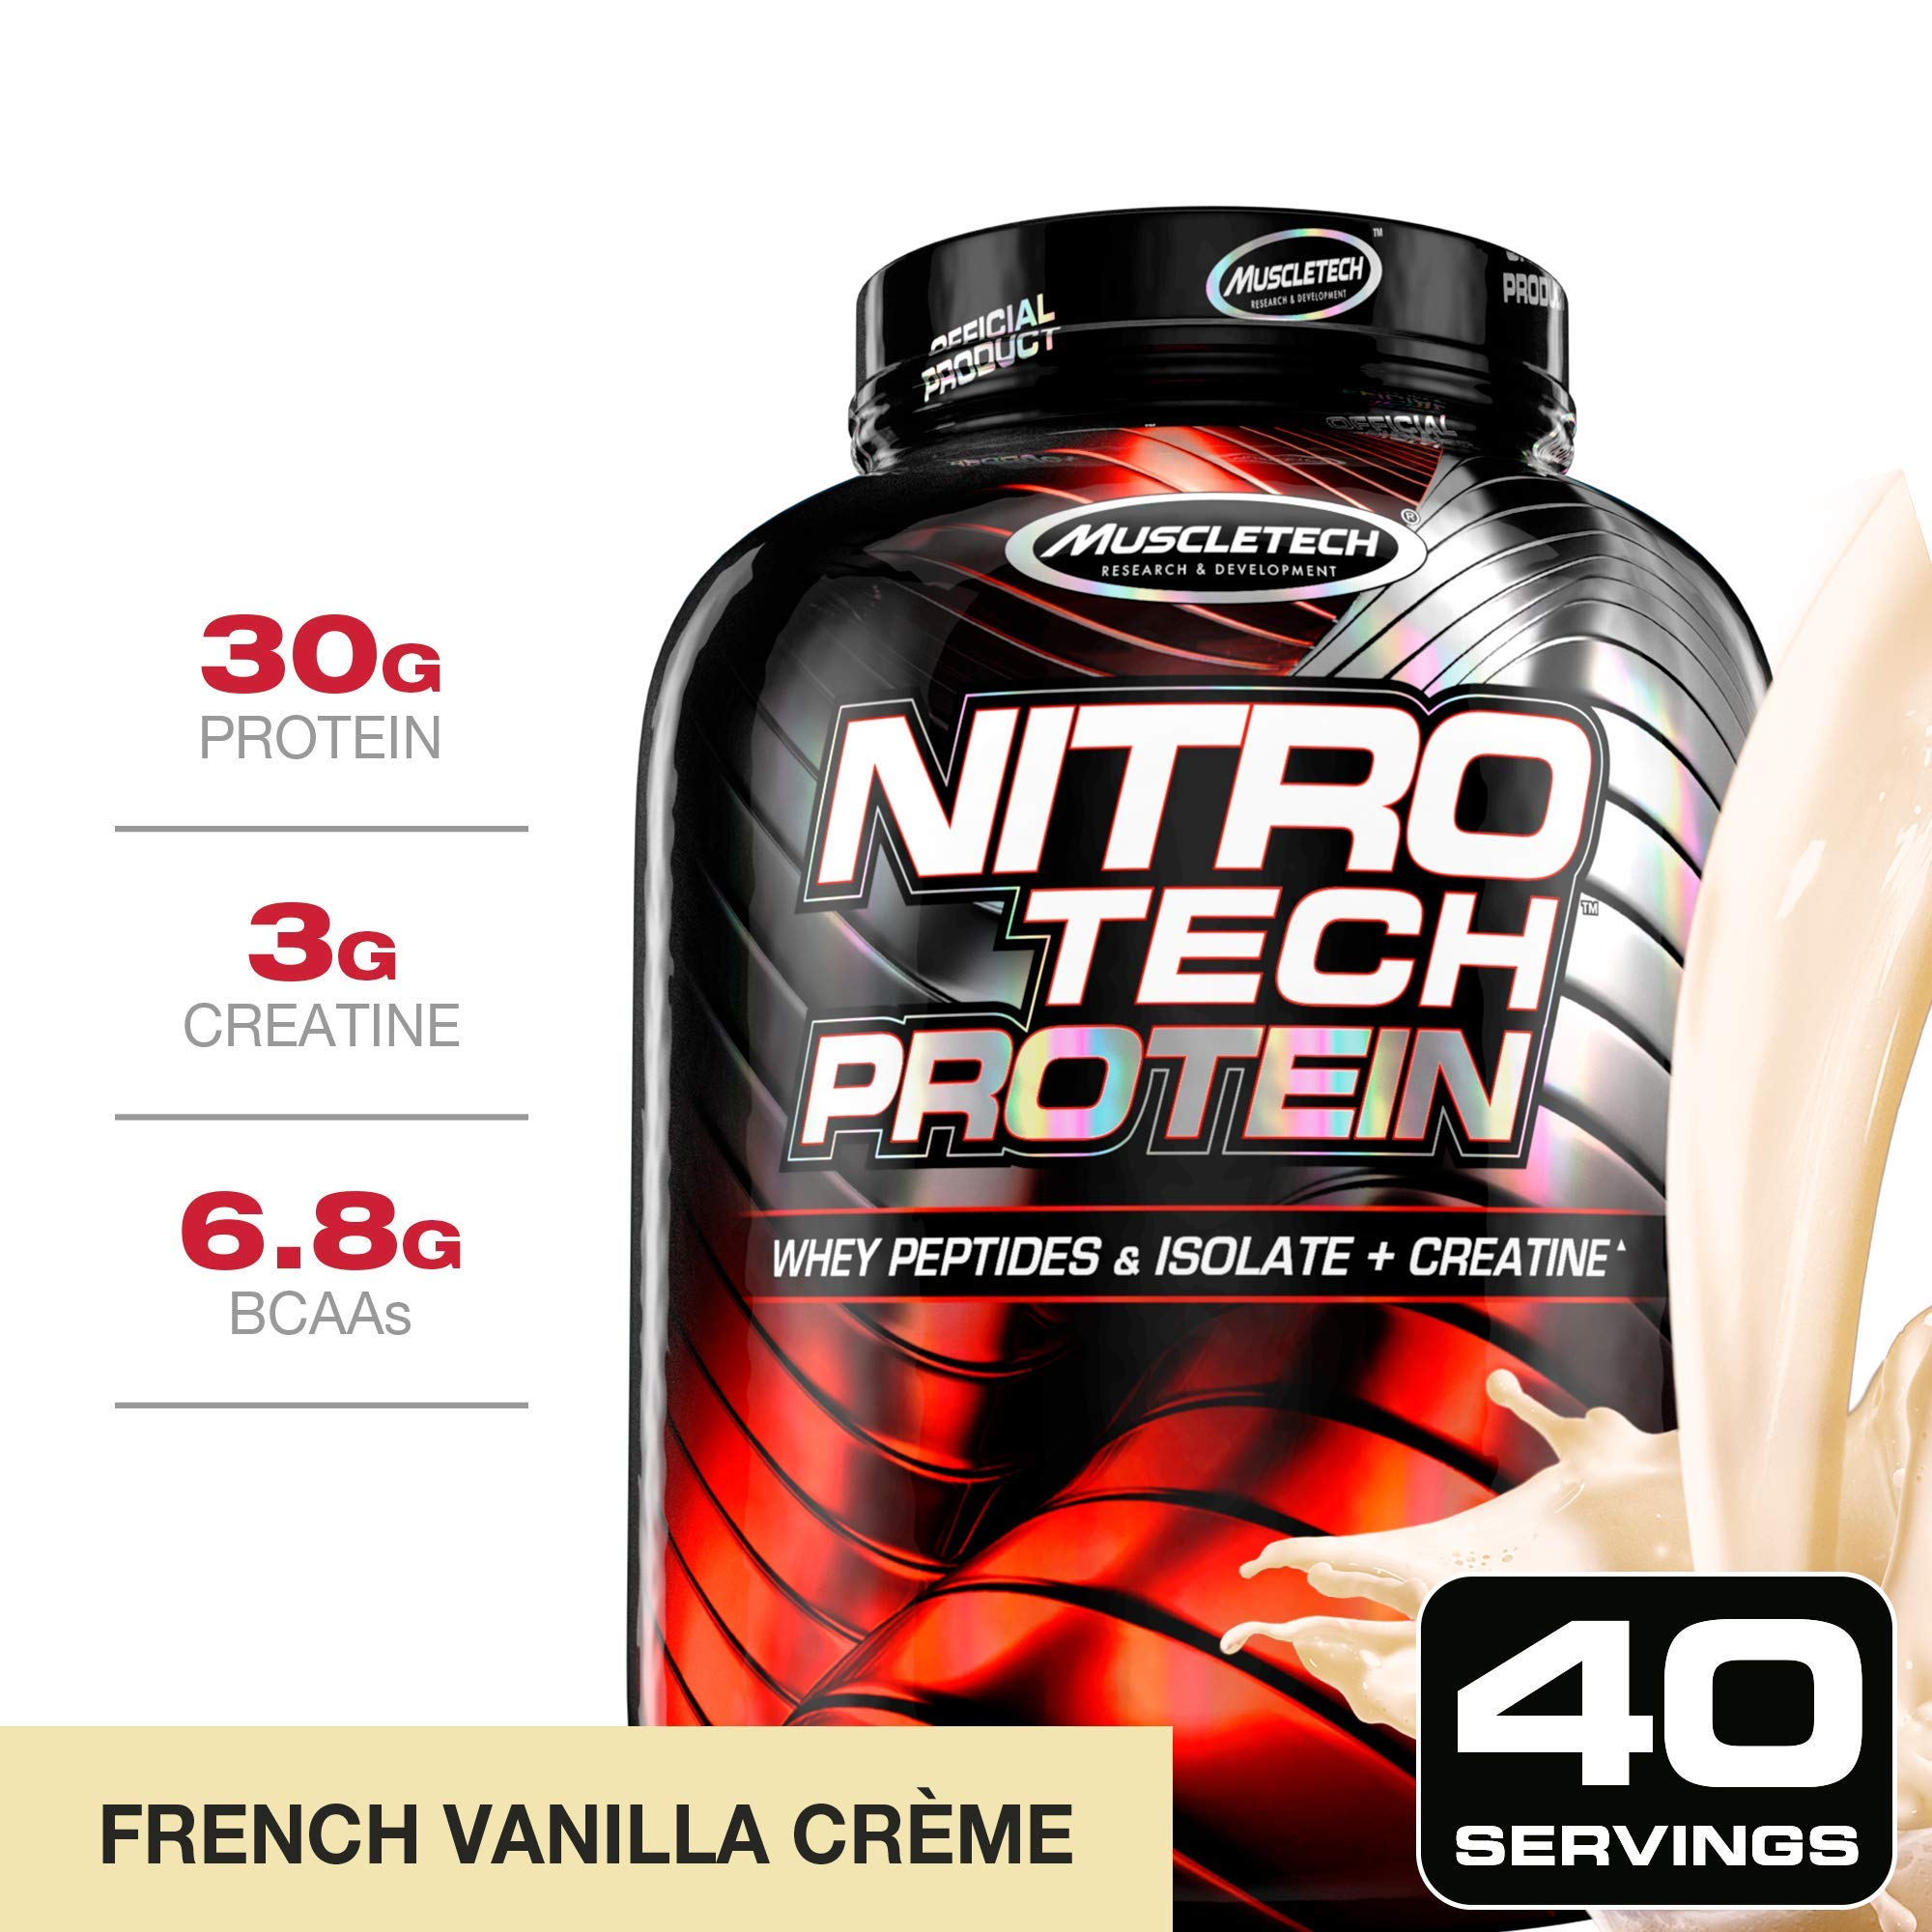 MuscleTech NitroTech Protein Powder Plus Muscle Builder, 100% Whey Protein with Whey Isolate, Vanilla, 40 Servings (4lbs) by MuscleTech